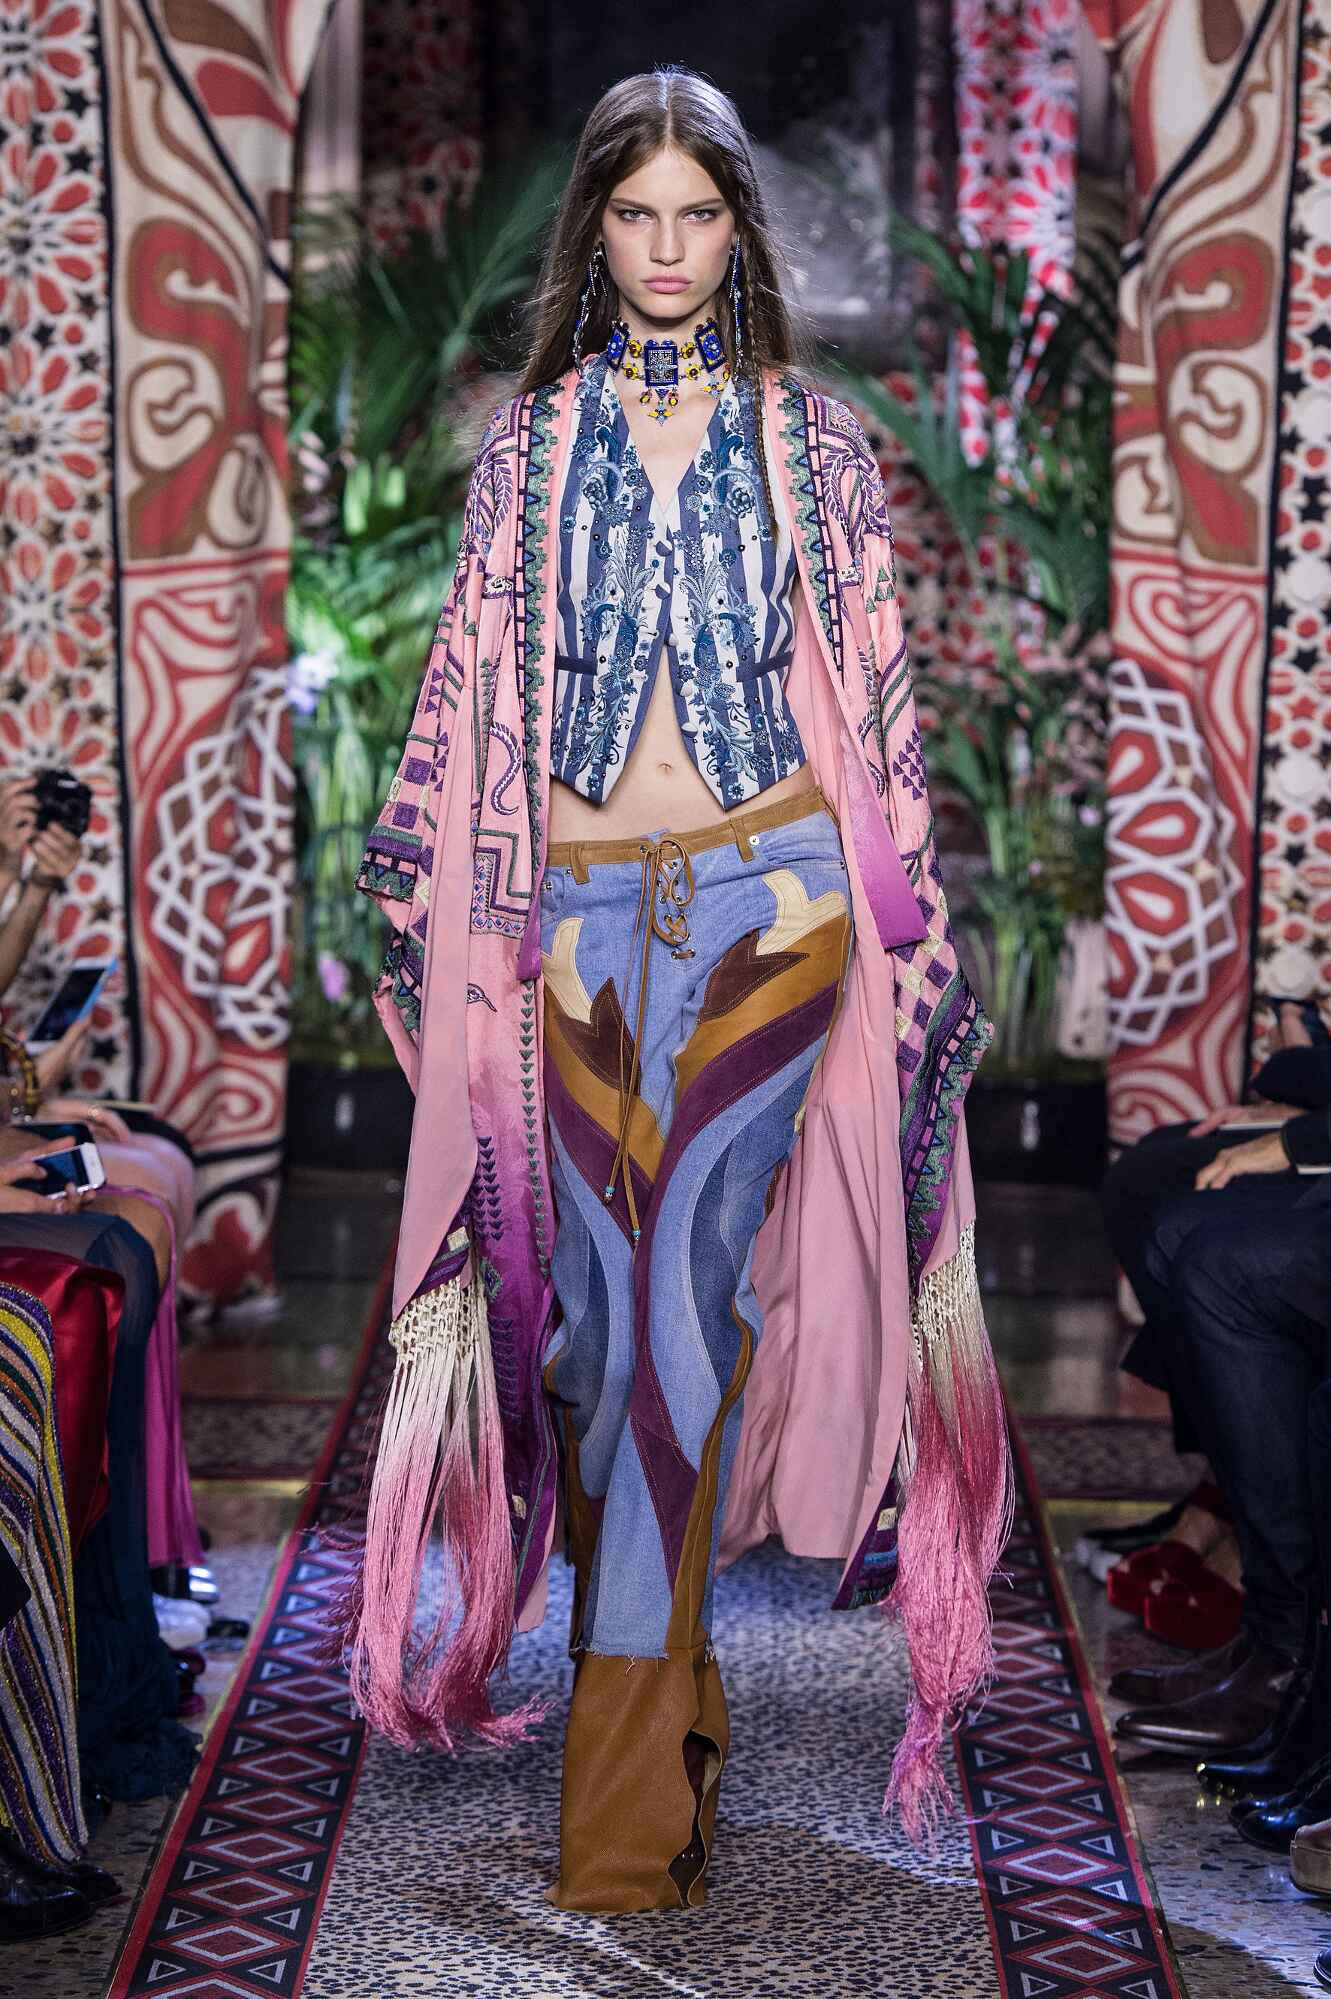 pretty nice fe8b0 71991 ROBERTO CAVALLI SPRING SUMMER 2017 WOMEN'S COLLECTION | The ...